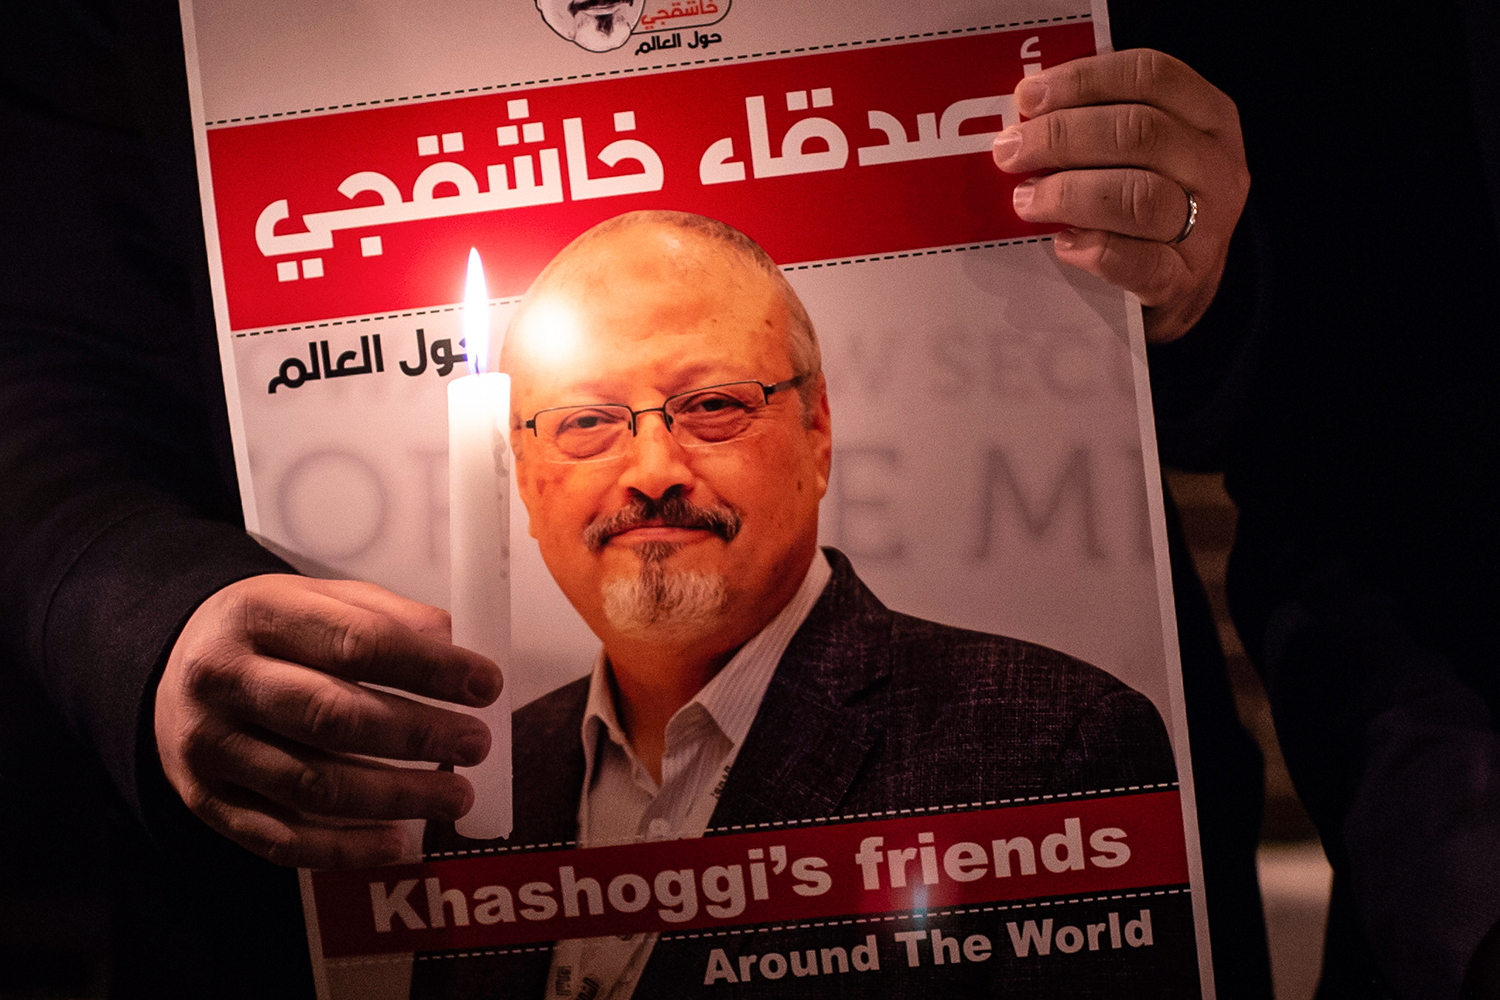 A demonstrator holds a poster of slain journalist Jamal Khashoggi during a gathering outside the Saudi Arabia consulate in Istanbul on Oct. 25, 2018.